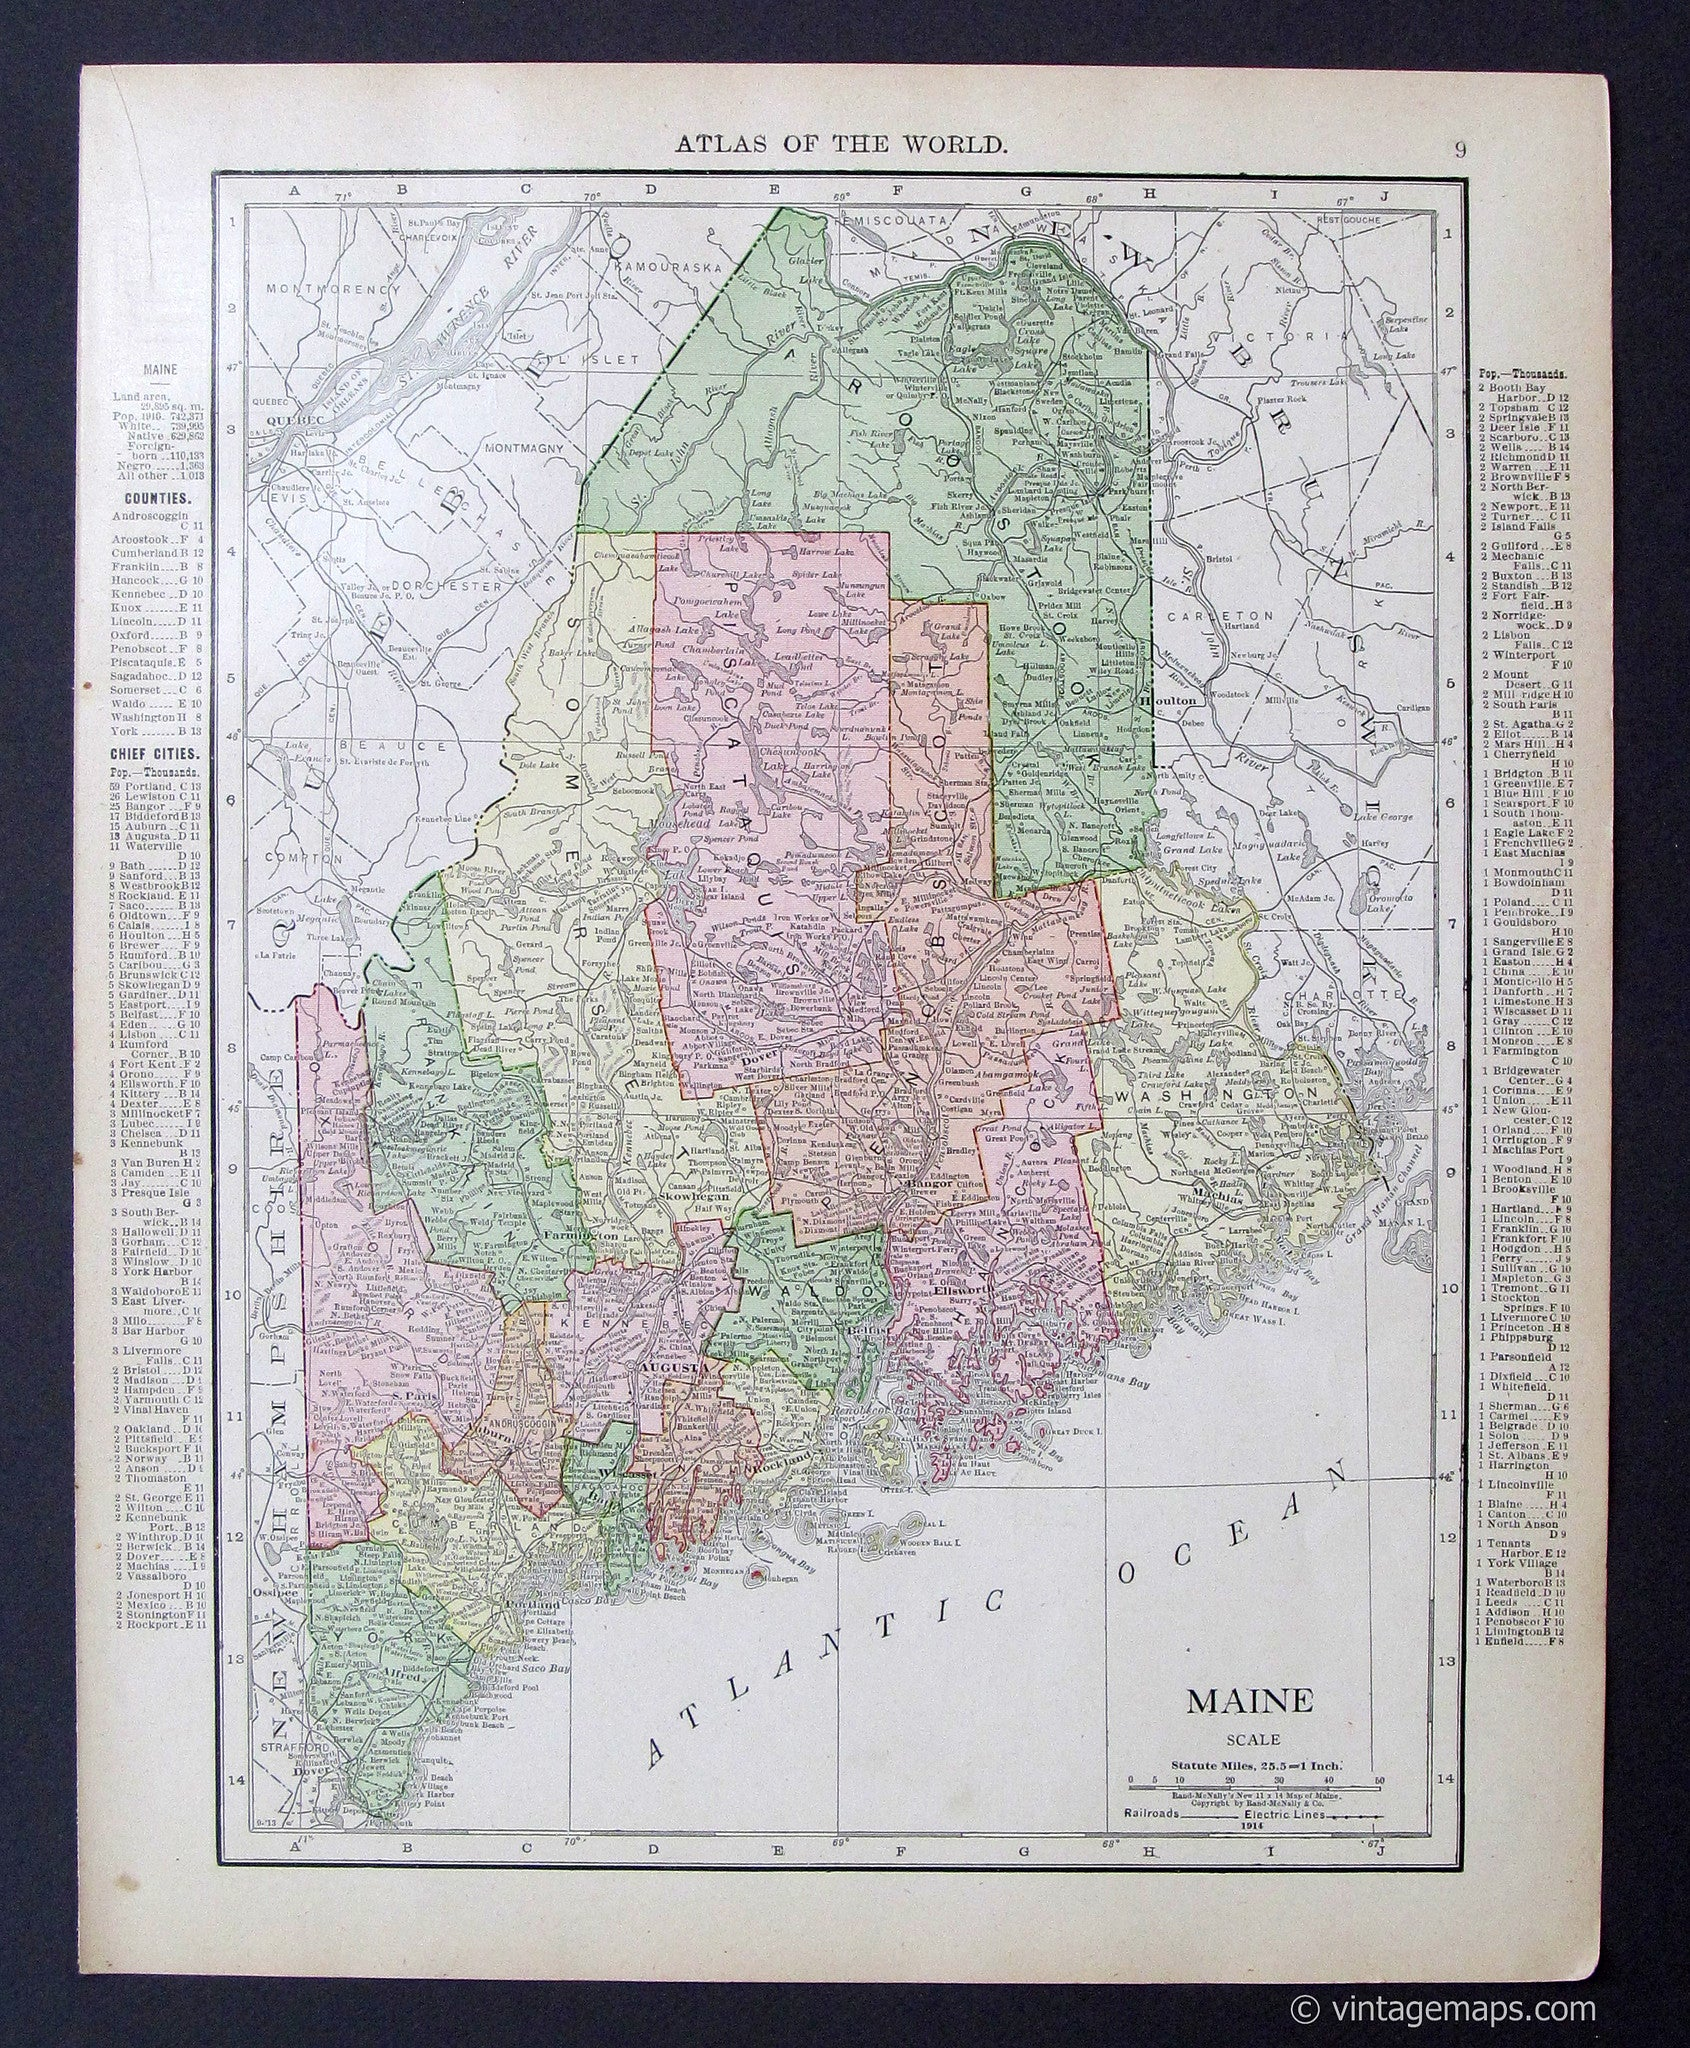 Jefferson Maine Map.Maine 1914 Vintage Maps